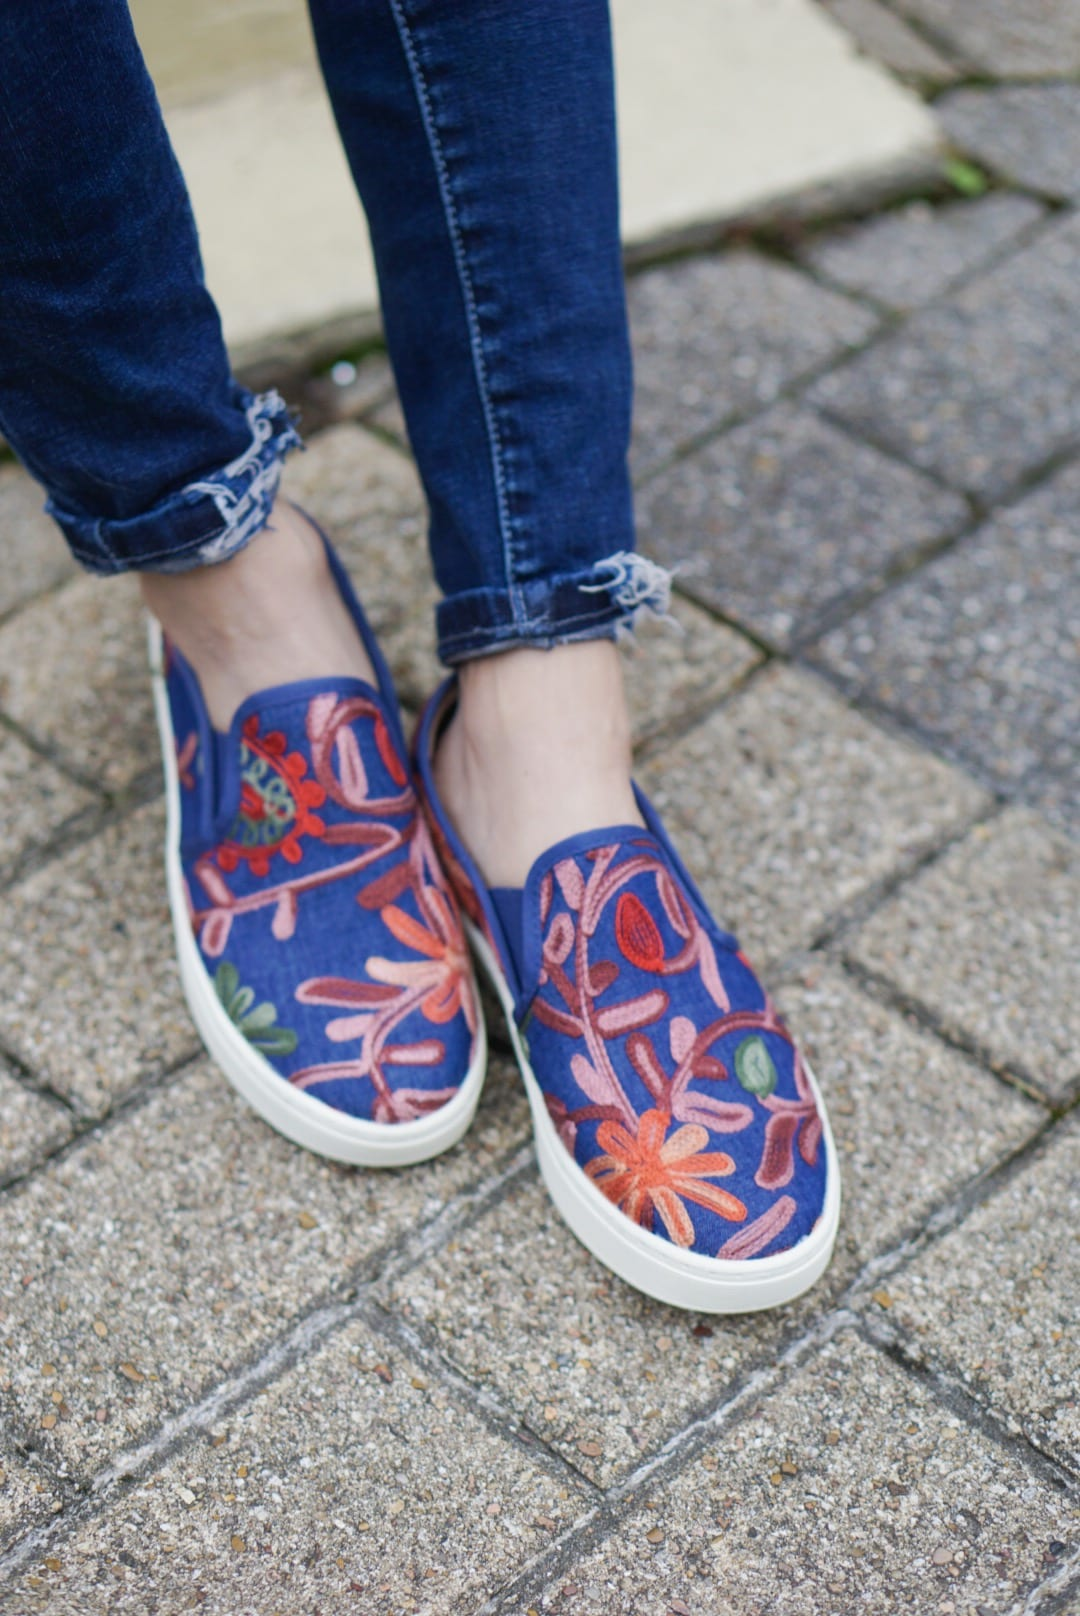 #stepwithstyle, #ad, productivity tips, working from home, Sofft shoes, Zappos, Tory Burch gemini tote, Tory Burch tote bag, embroidered slip ons, work wear style, work wear fashion, spring style, spring fashion, quay high key sunglasses, bauble bar earrings